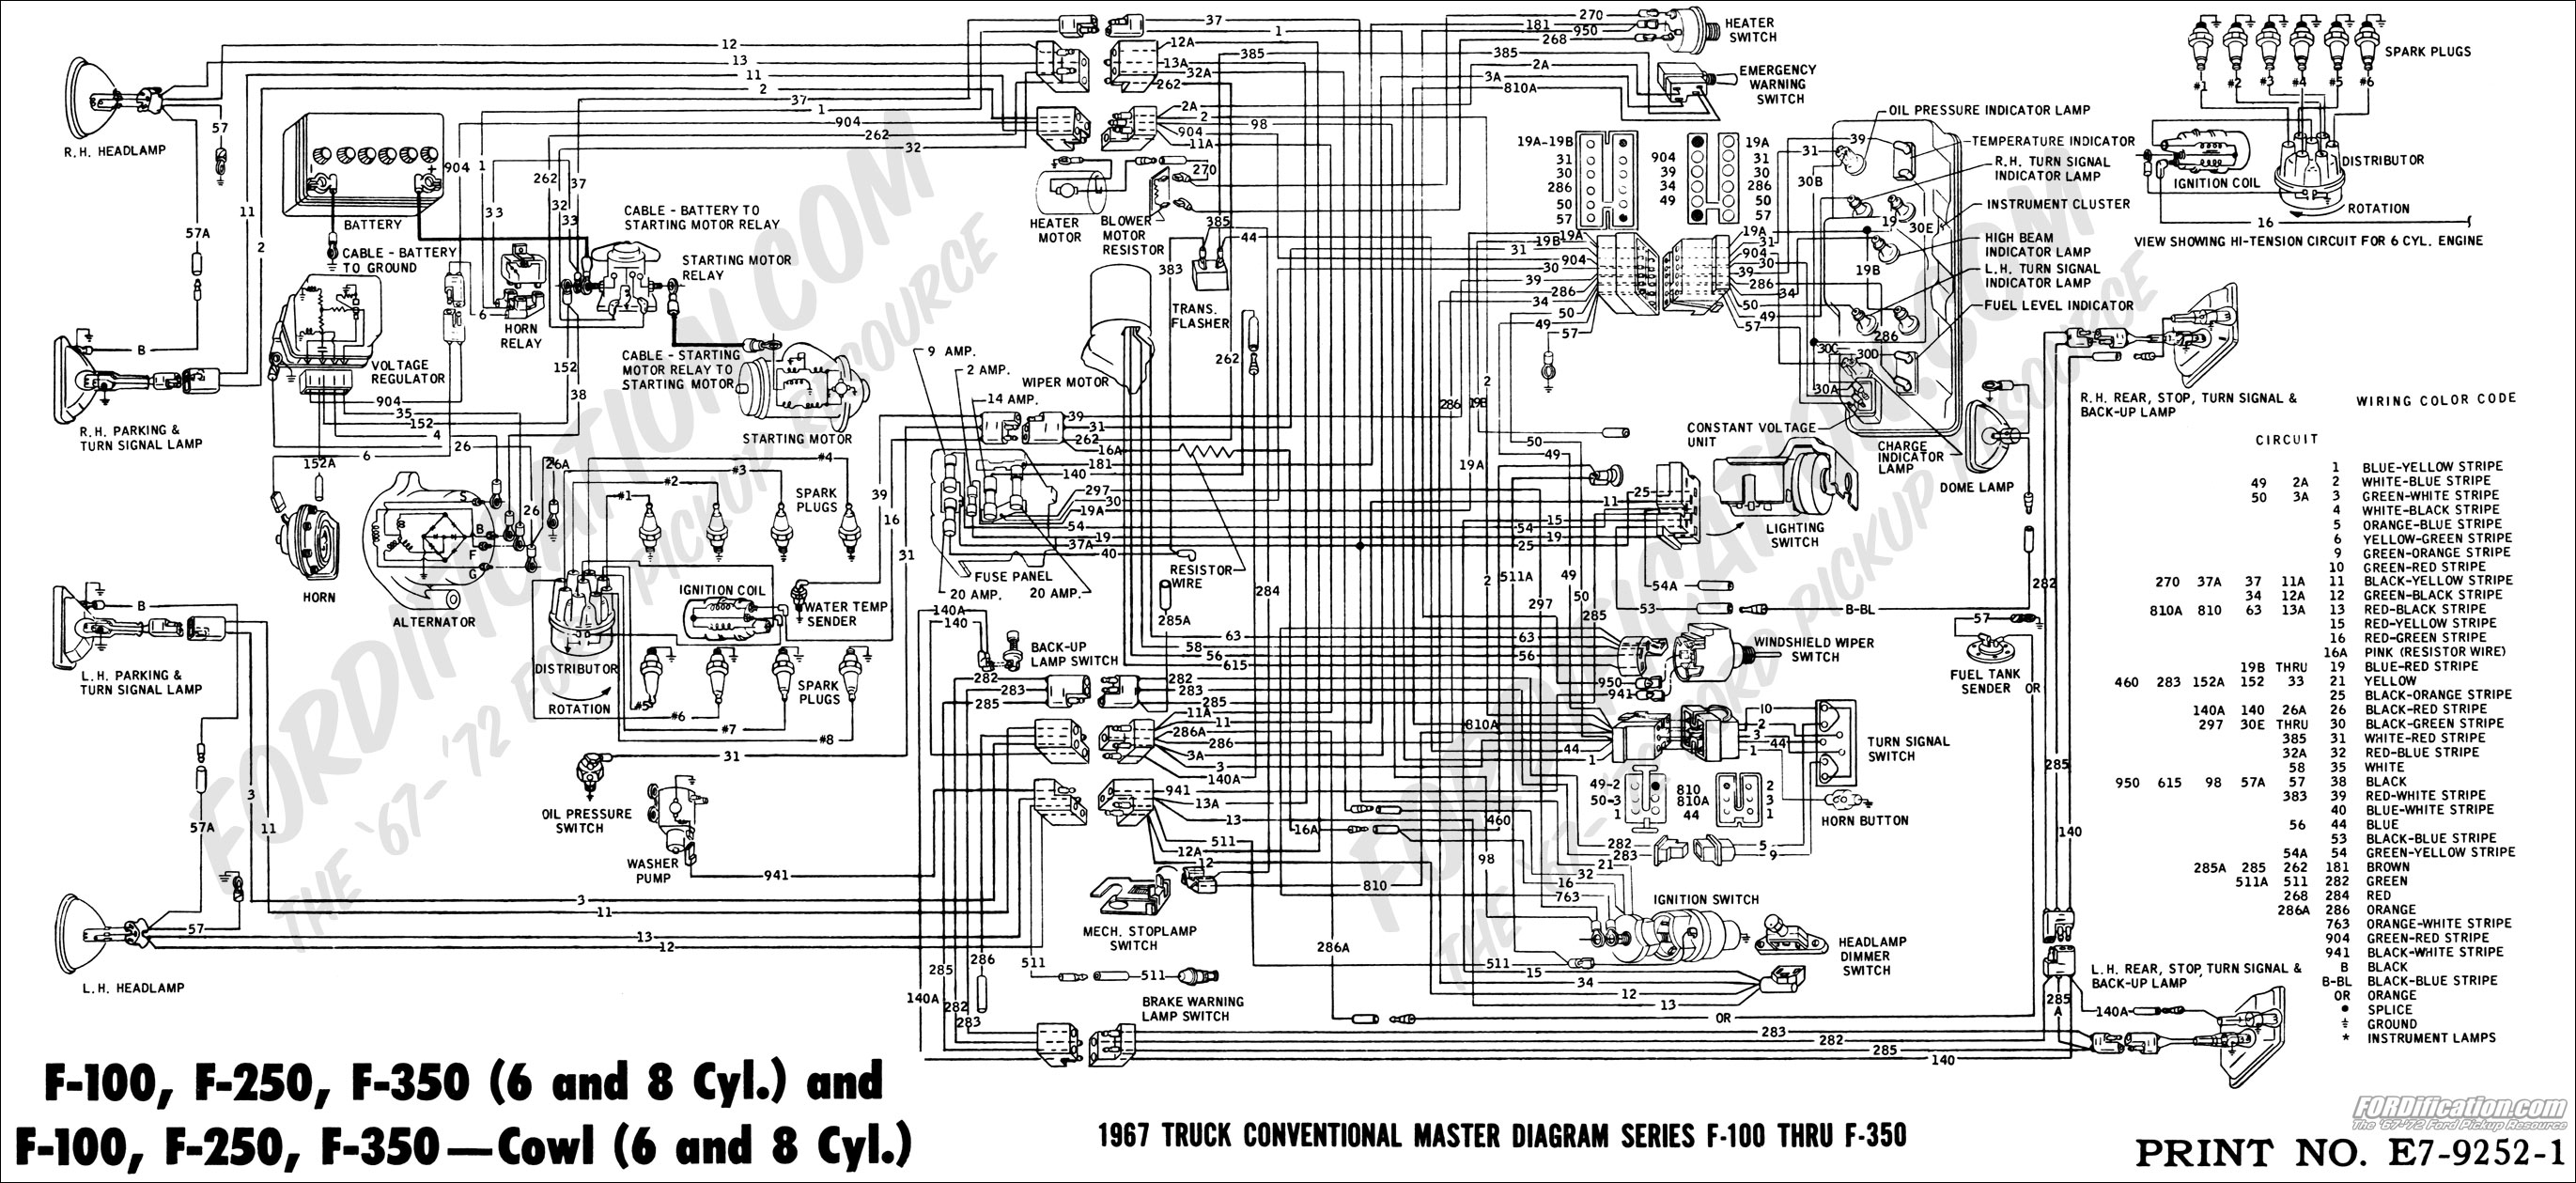 67masterdiagram ford truck technical drawings and schematics section h wiring 2005 ford f150 ignition wiring diagram at bayanpartner.co